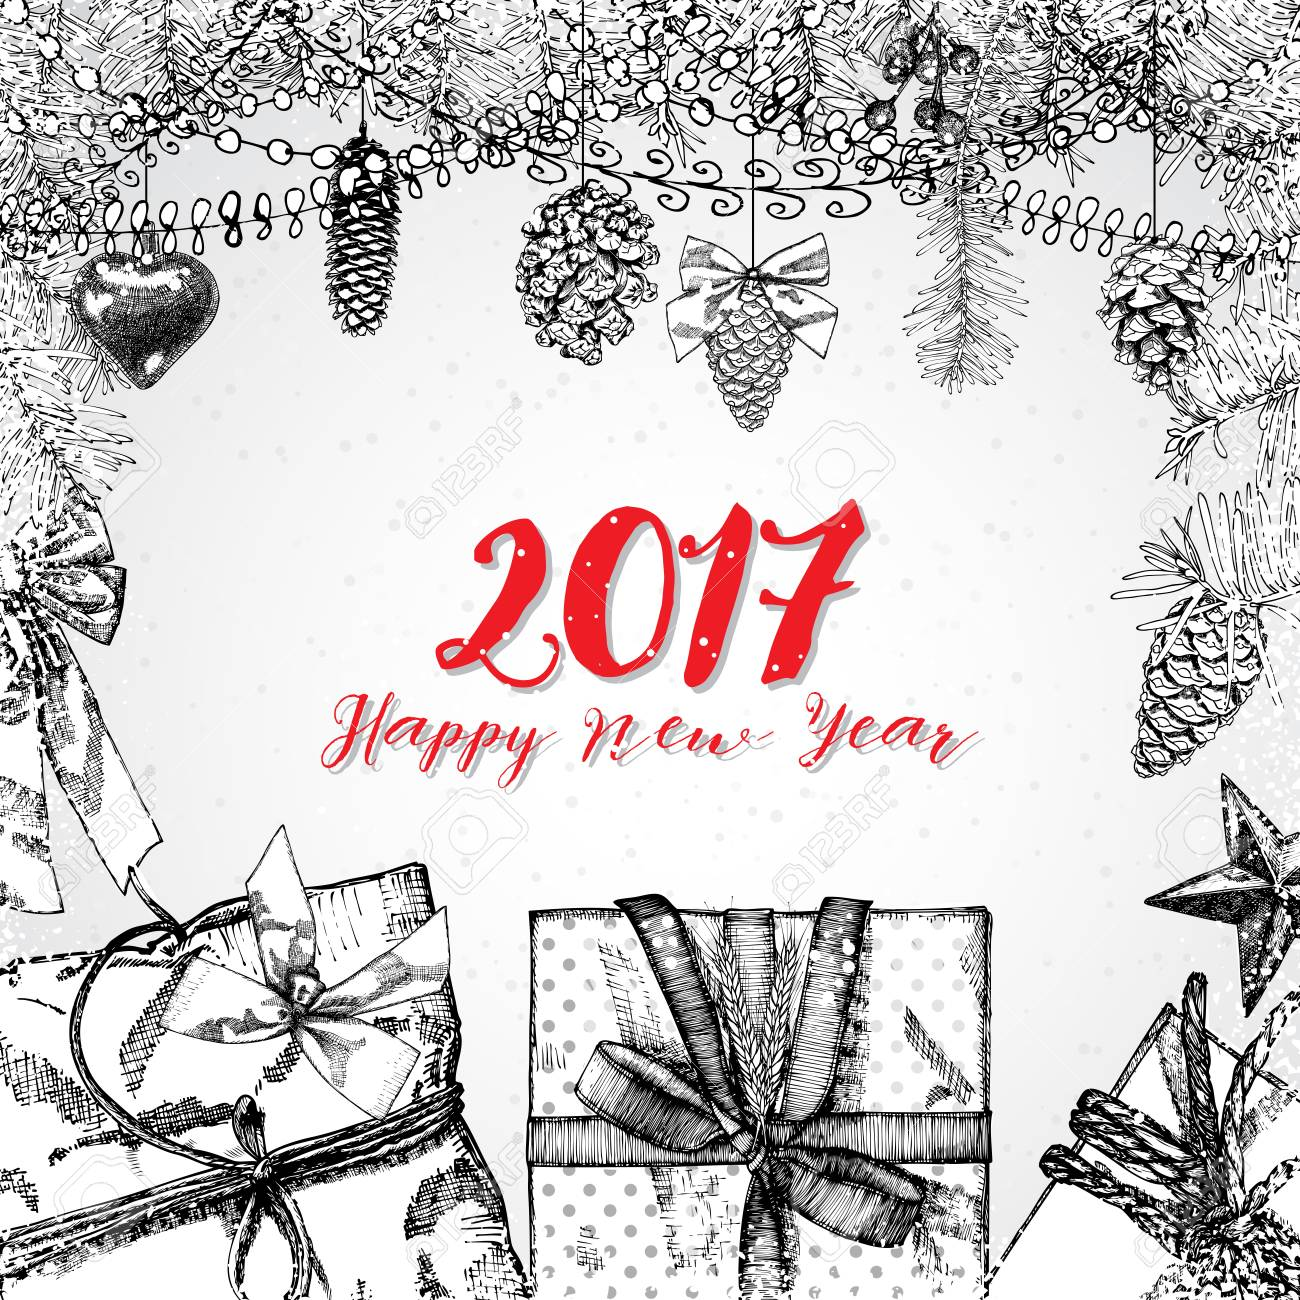 2017 Happy New Year Hand Drawing Greeting Card Design With Calligraphy Royalty Free Cliparts Vectors And Stock Illustration Image 66806094